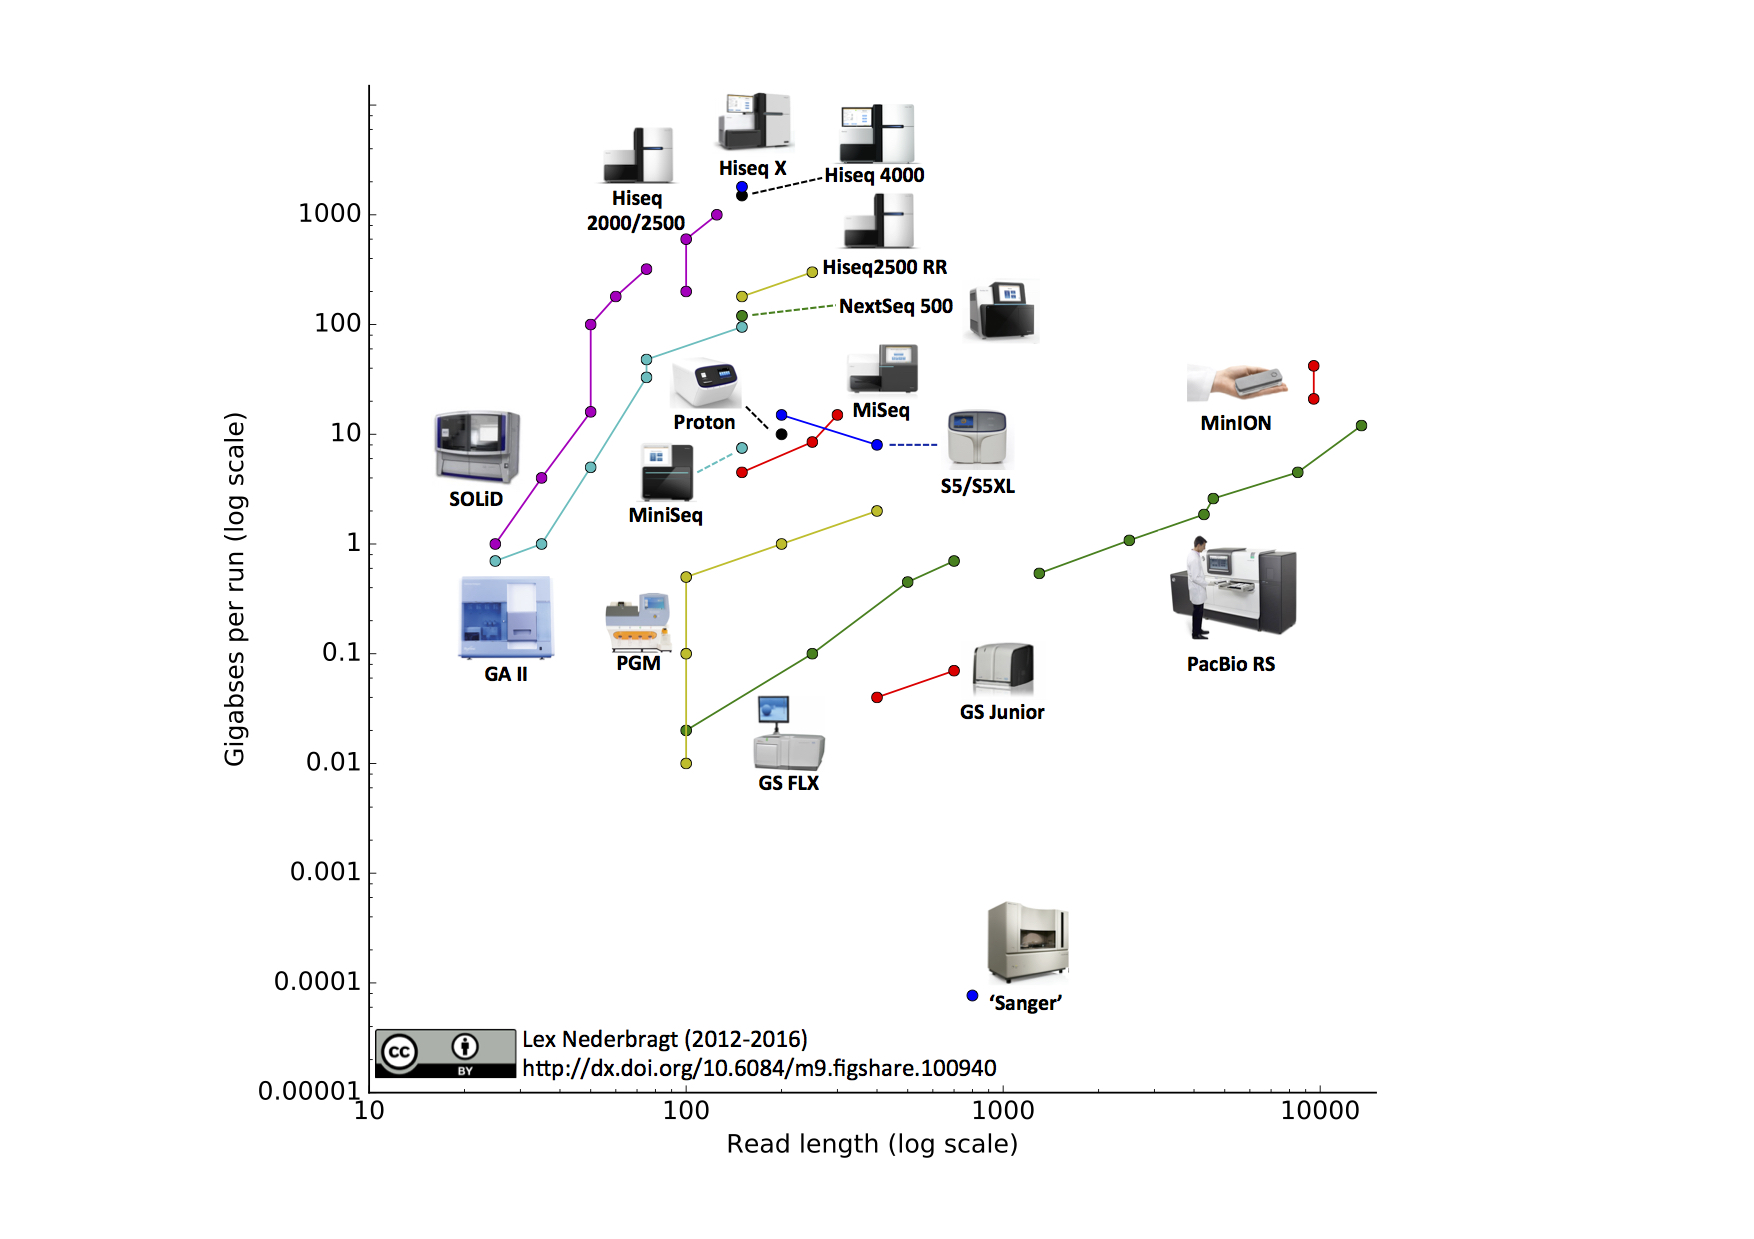 Developments in next generation sequencing